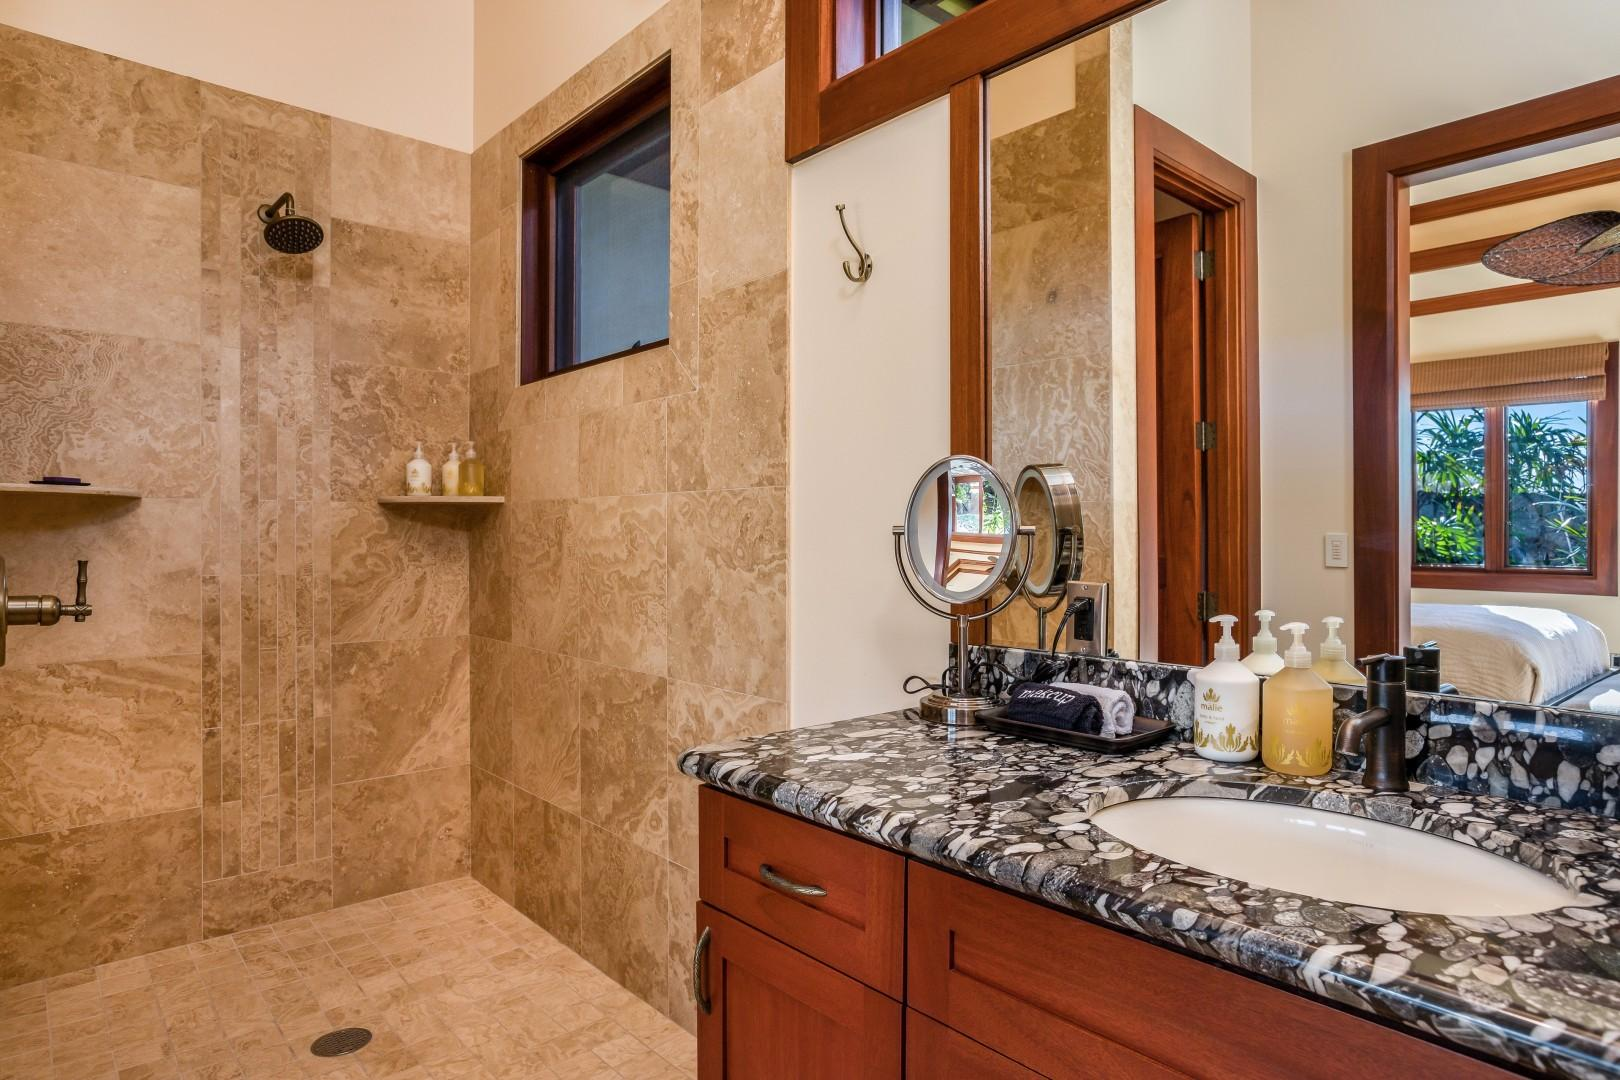 Second bedroom suite's full bath with walk-in shower and granite countertops.